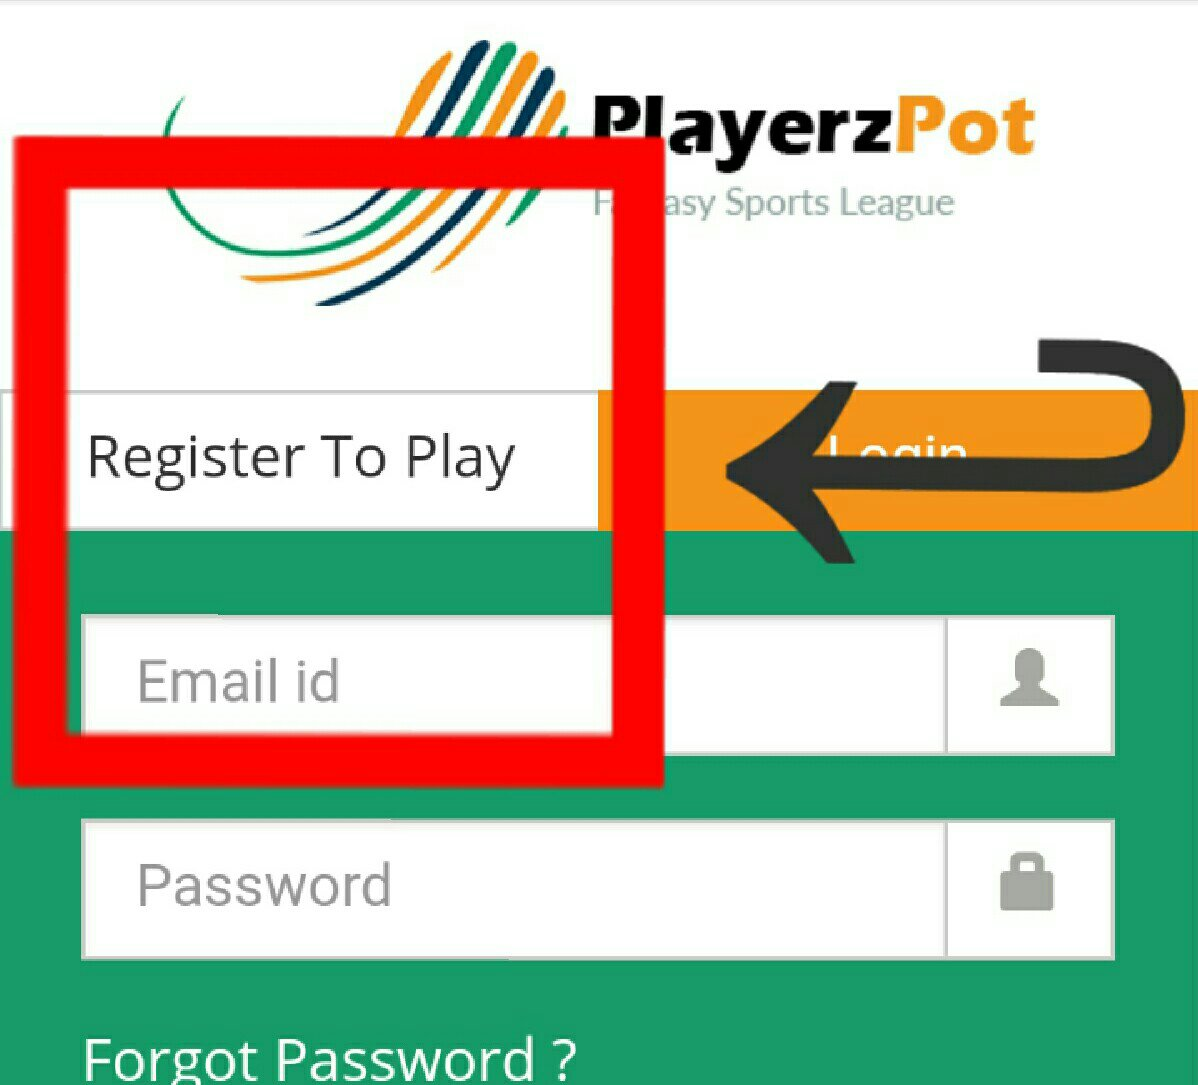 playerzpot apk file download